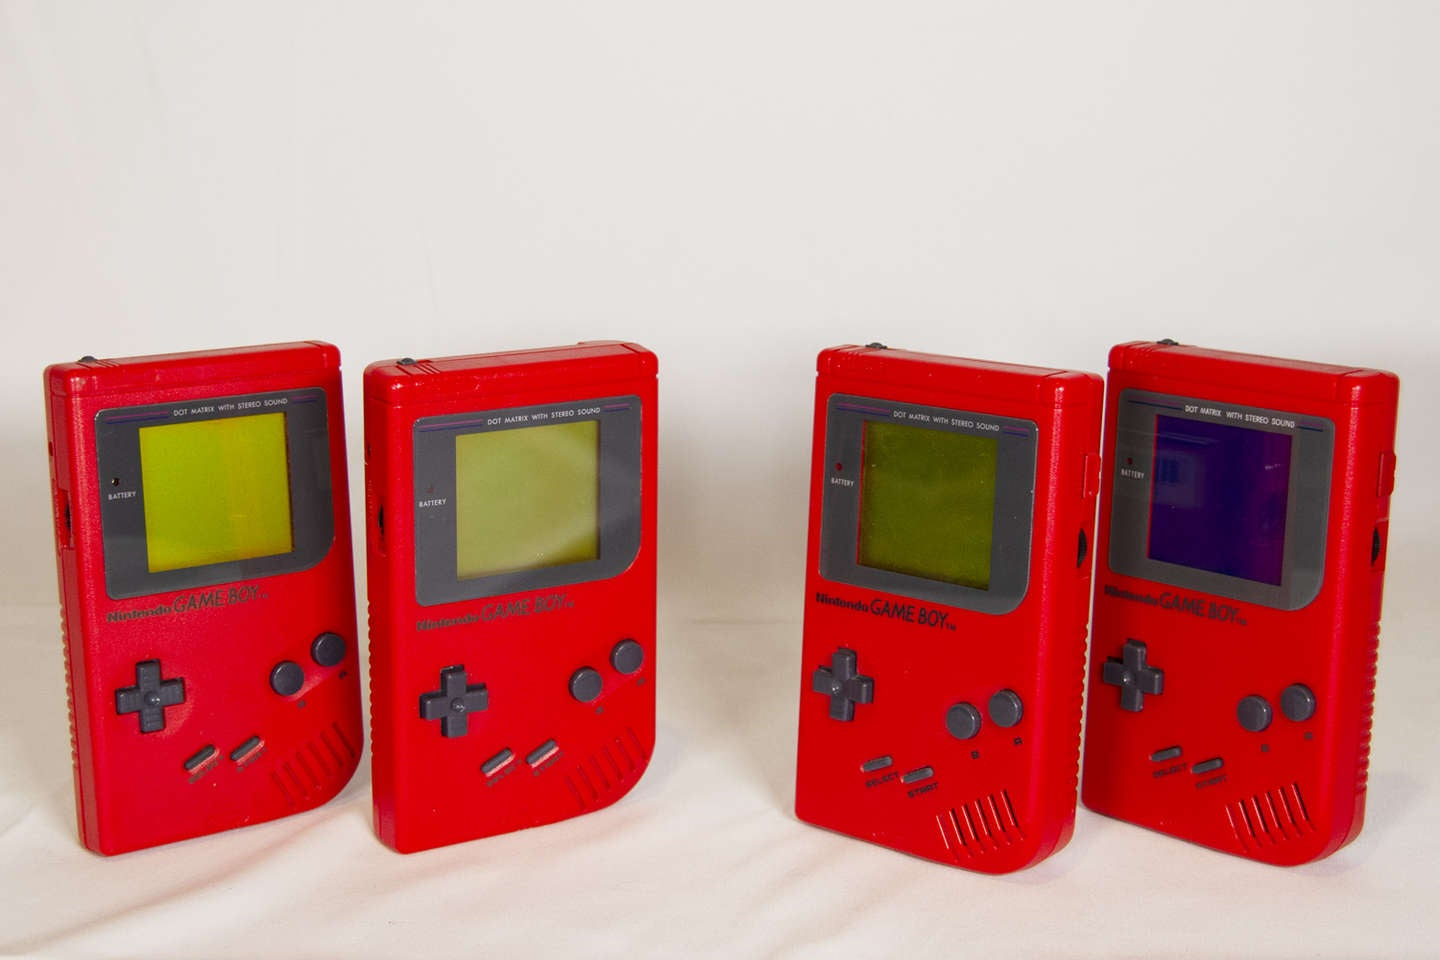 Red Play It Loud Game Boy